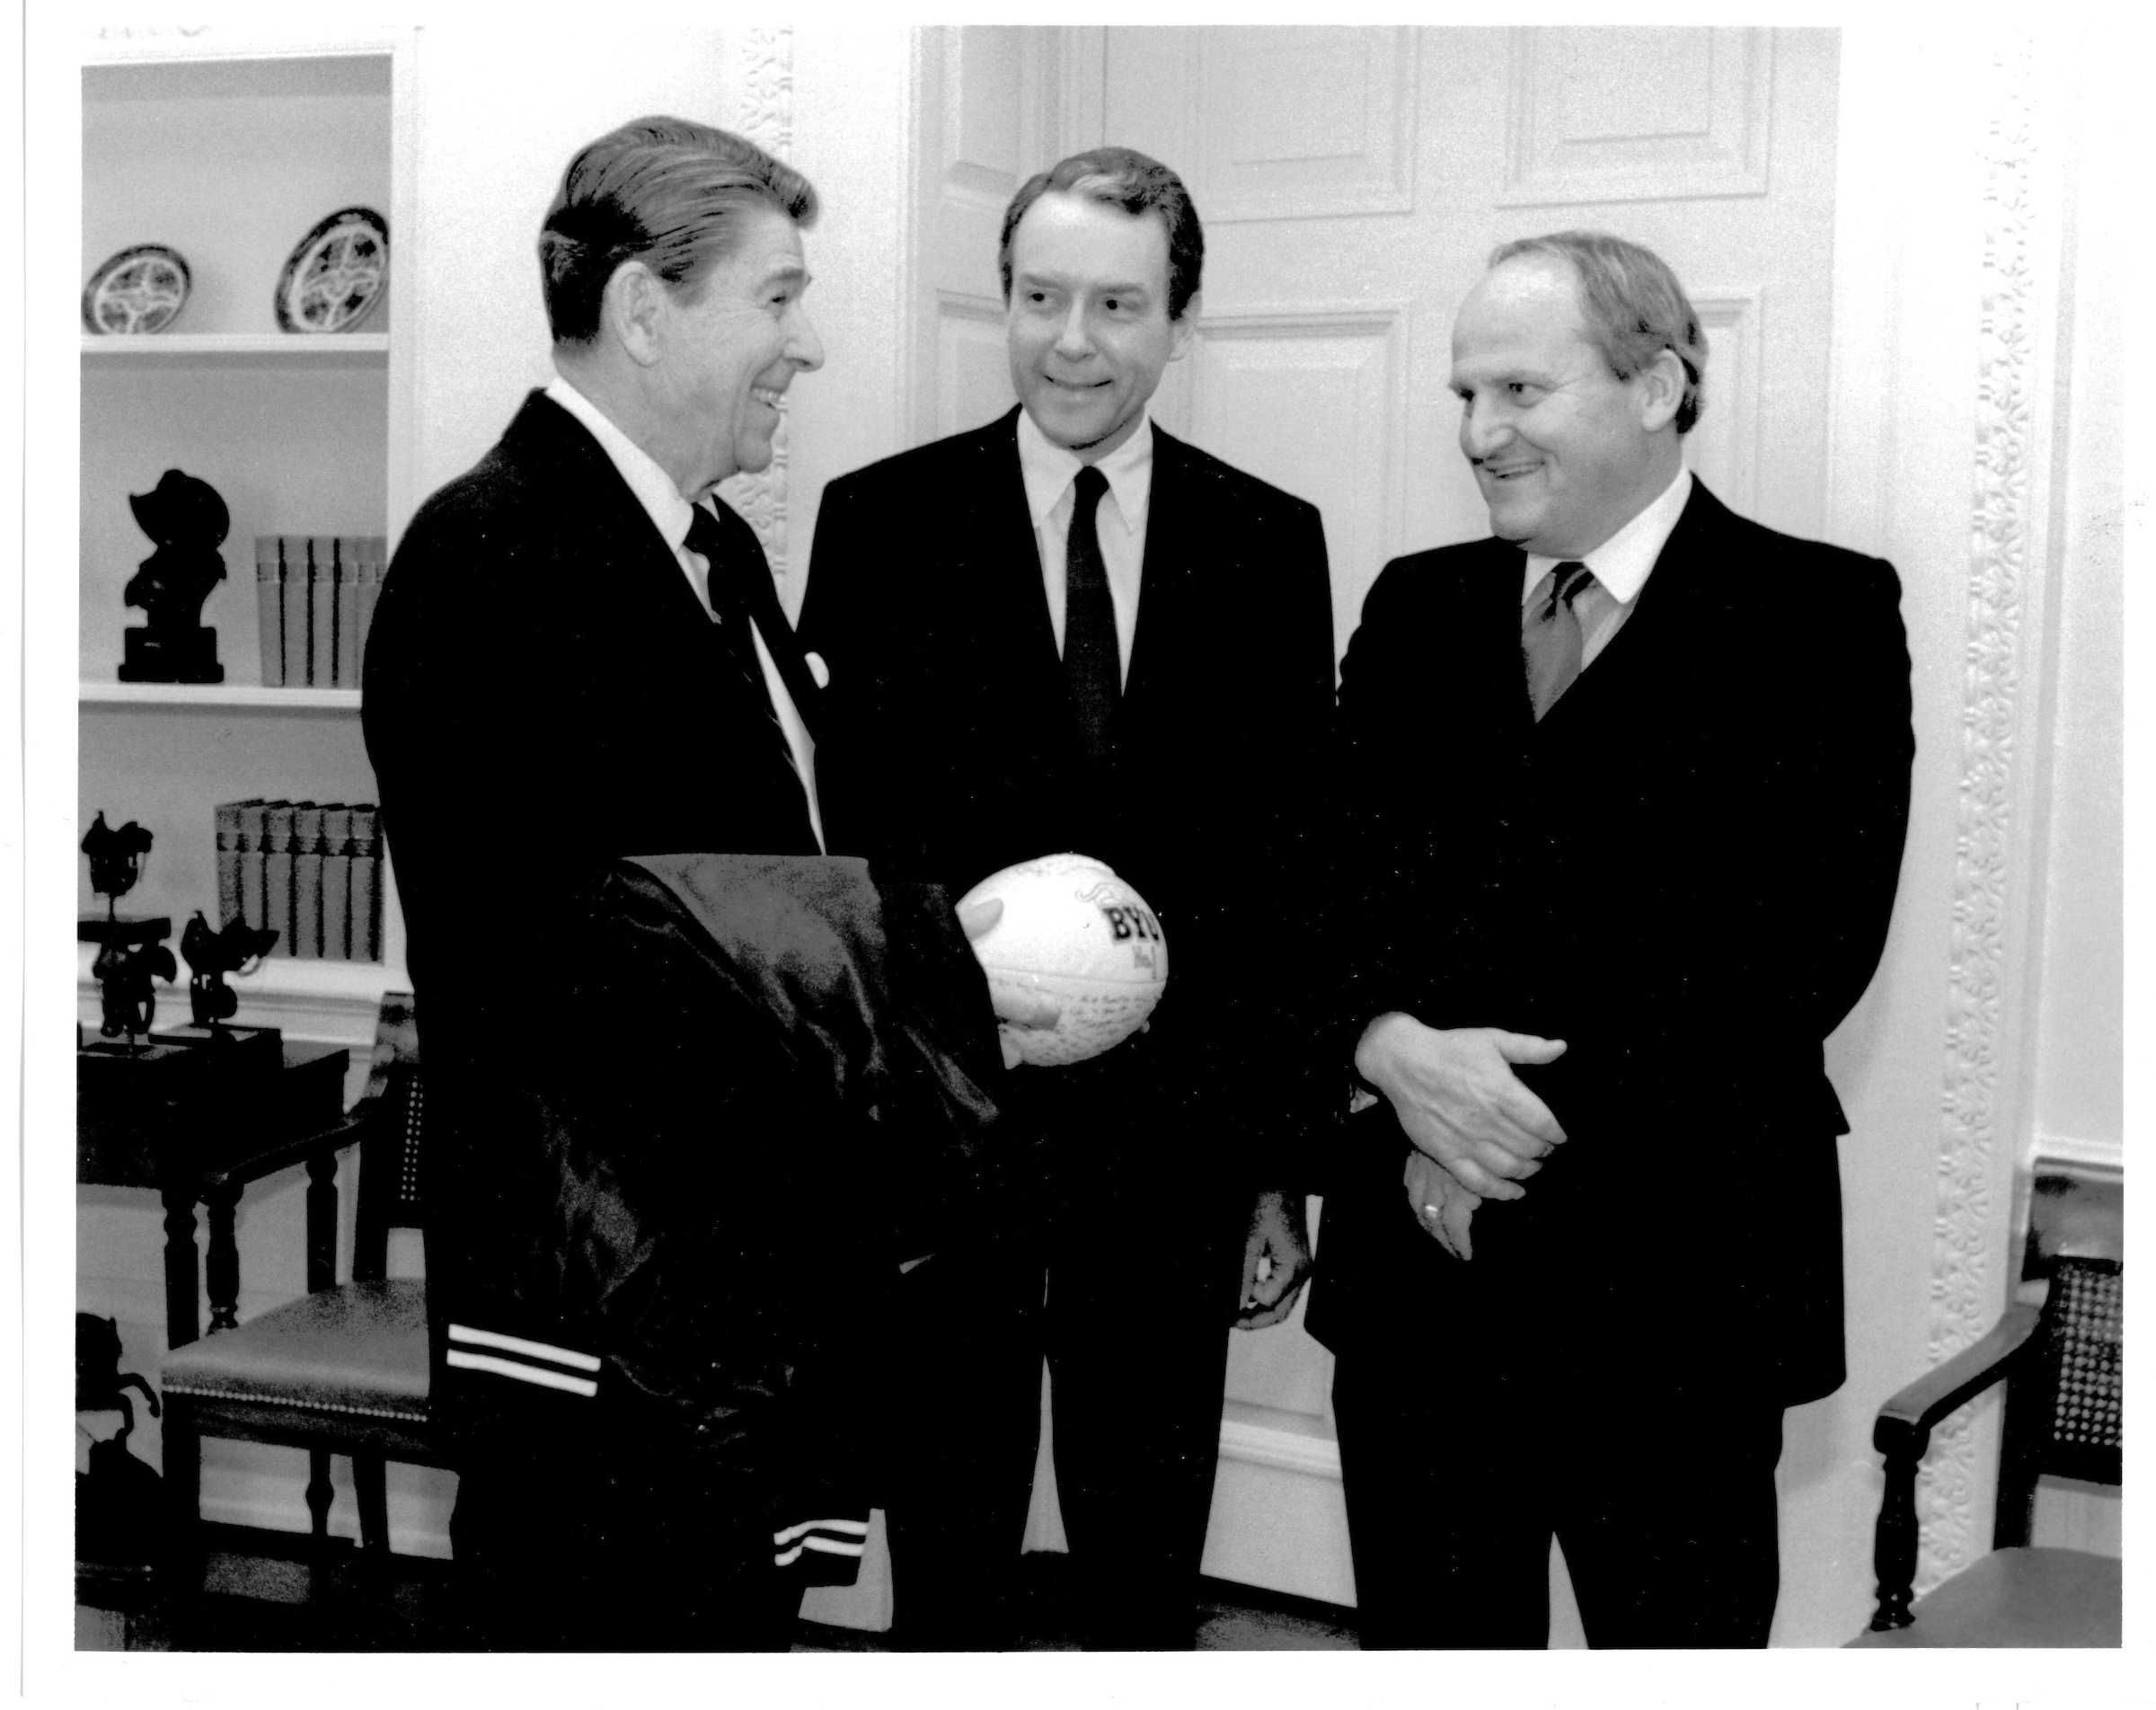 Sen. Orrin Hatch (R-UT) and LaVell Edwards, coach of the Brigham Young University football team, pay a courtesy call on Pres. Ronald Reagan in the Oval Office on Jan. 14, 1985. This meeting came just a week before Pres. Reagan's second inauguration, and followed the successful season in which Coach Edwards led the BYU Cougars to a 13-0 record and the national championship as determined by the consensus of the AP, UPI, USAToday and most other major polls, in those pre-Bowl-Championship-Series days. photograph: Pete Souza, The White House.